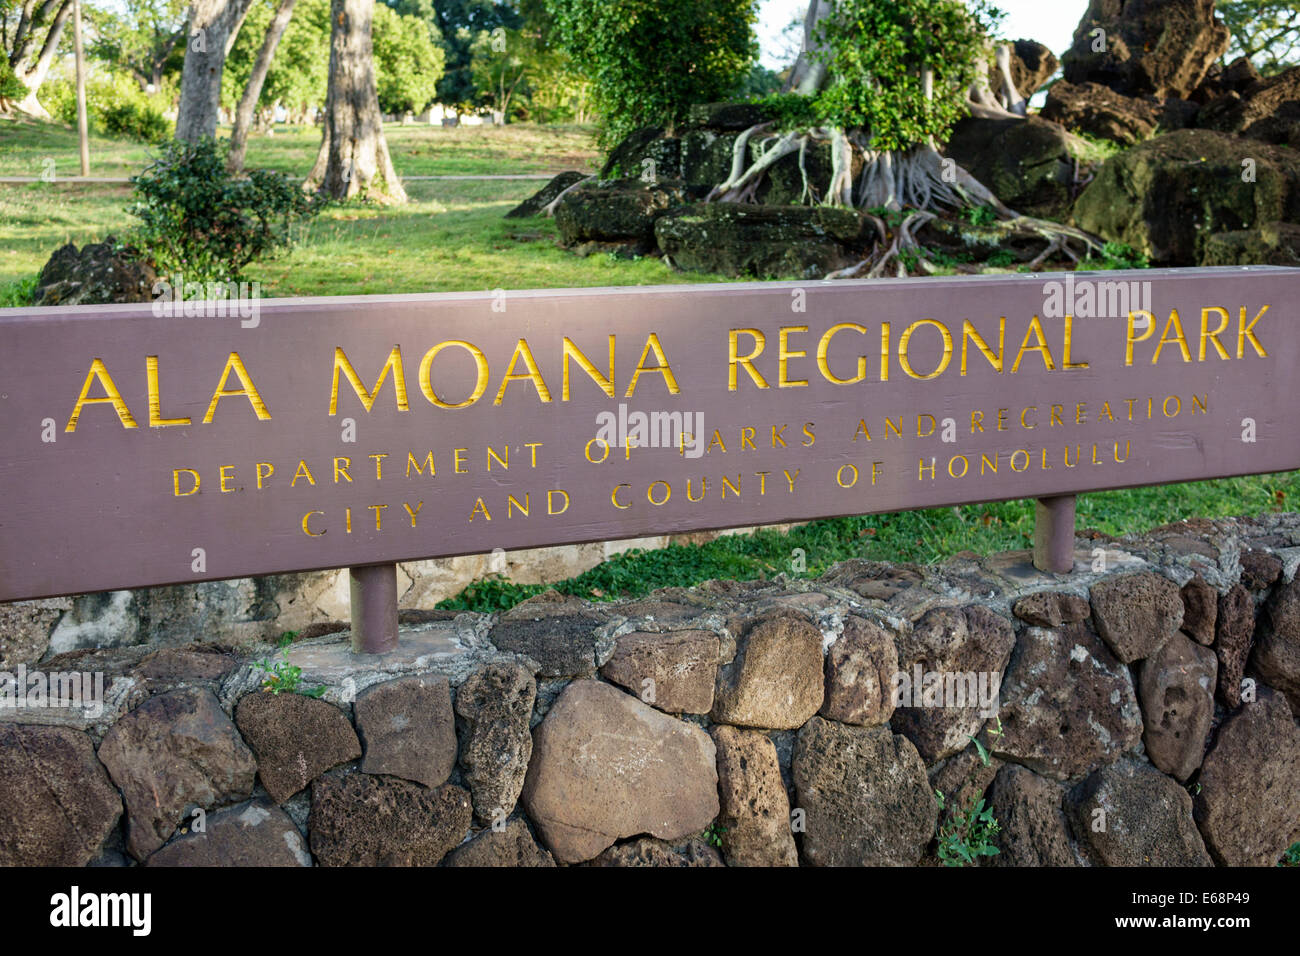 Hawaii Hawaiian Honolulu Ala Moana Beach State Regional Park sign - Stock Image